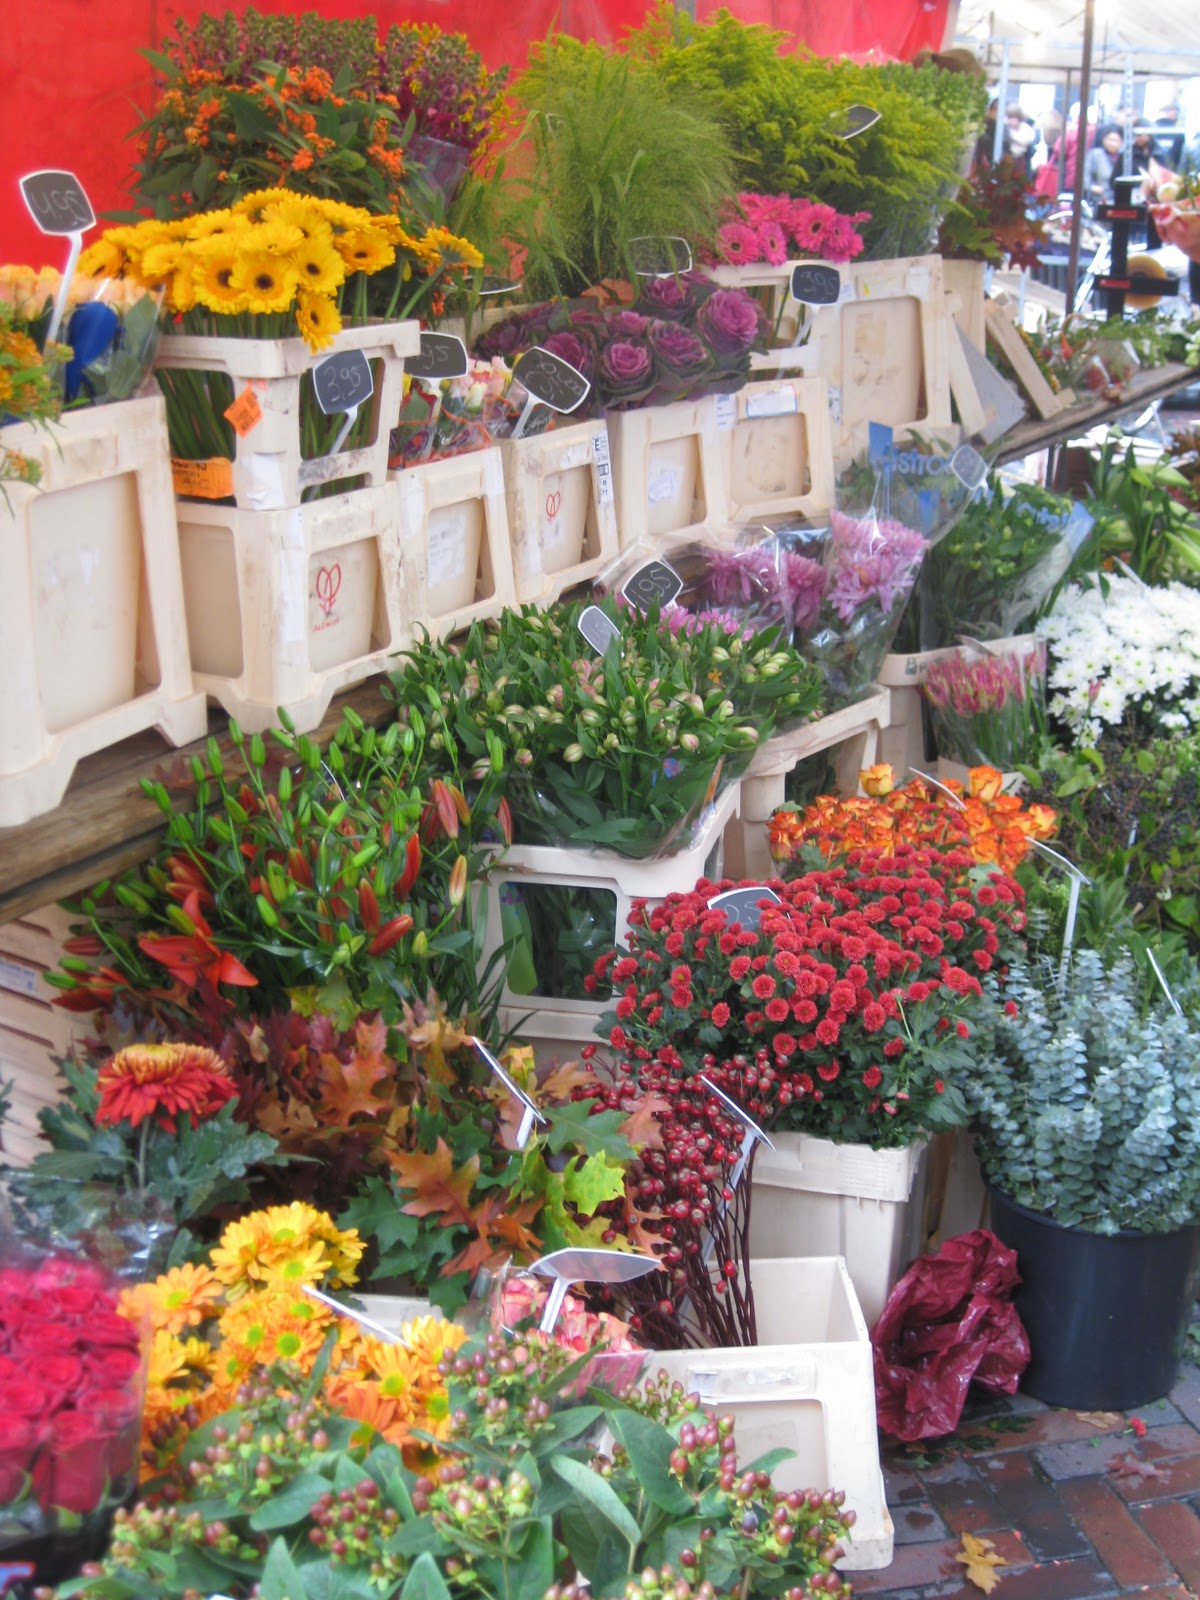 Flower market in Utrecht